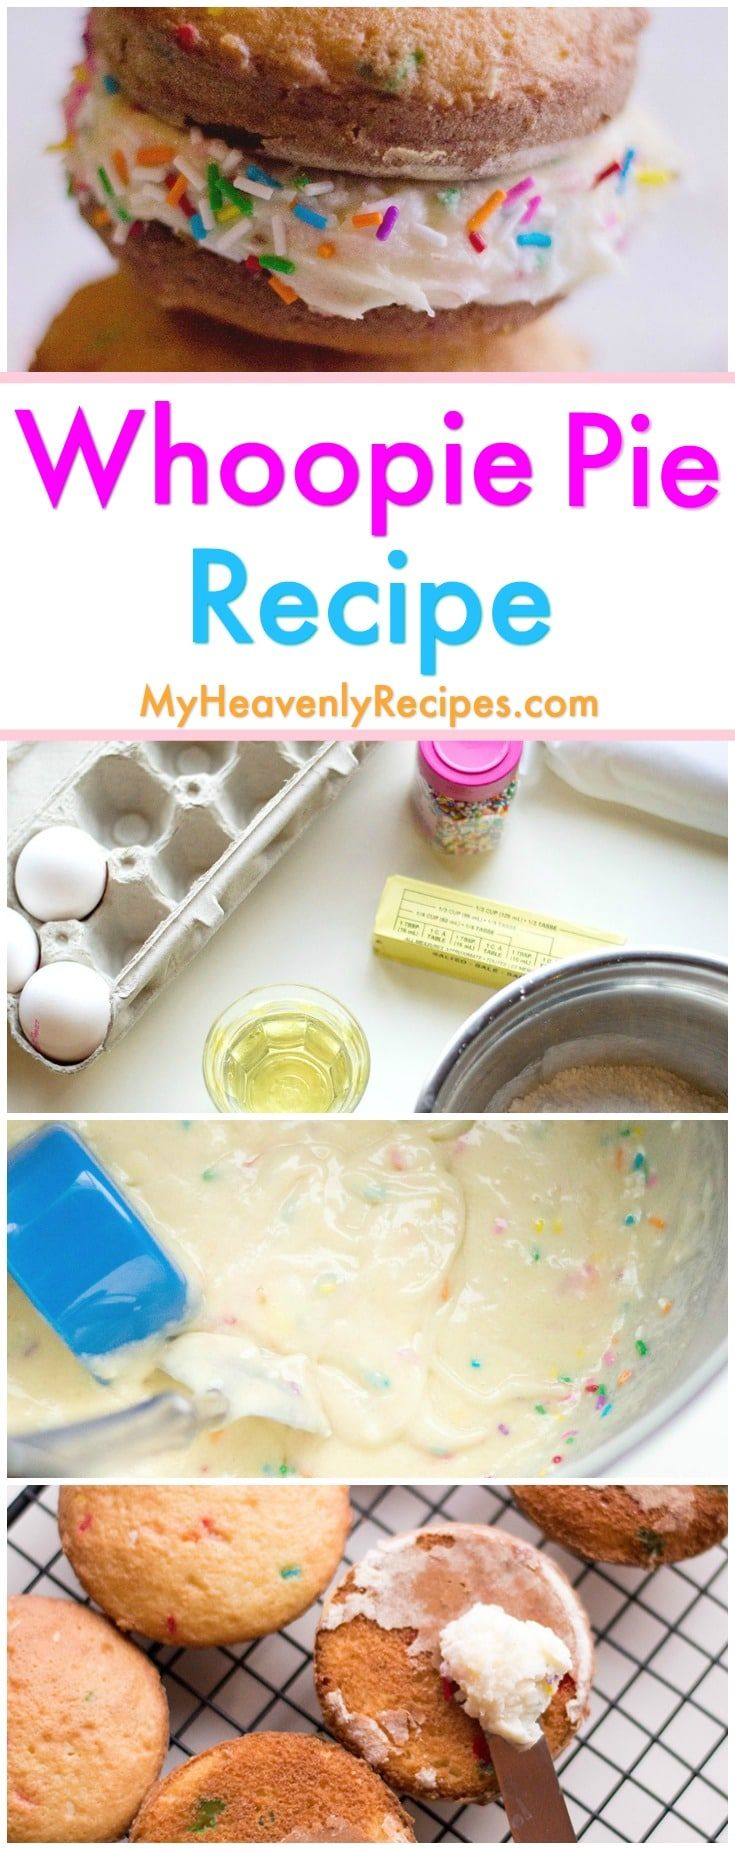 This fun Whoopie Pie recipe is the best Whoopie Pie recipe out there! Easily make Whoopie Pies using box cake mix and a few other simple ingredients. An easy dessert recipe! #whoopiepies #whoopiepie #easydesserts #easydessertrecipes via @heavenlyrecipe